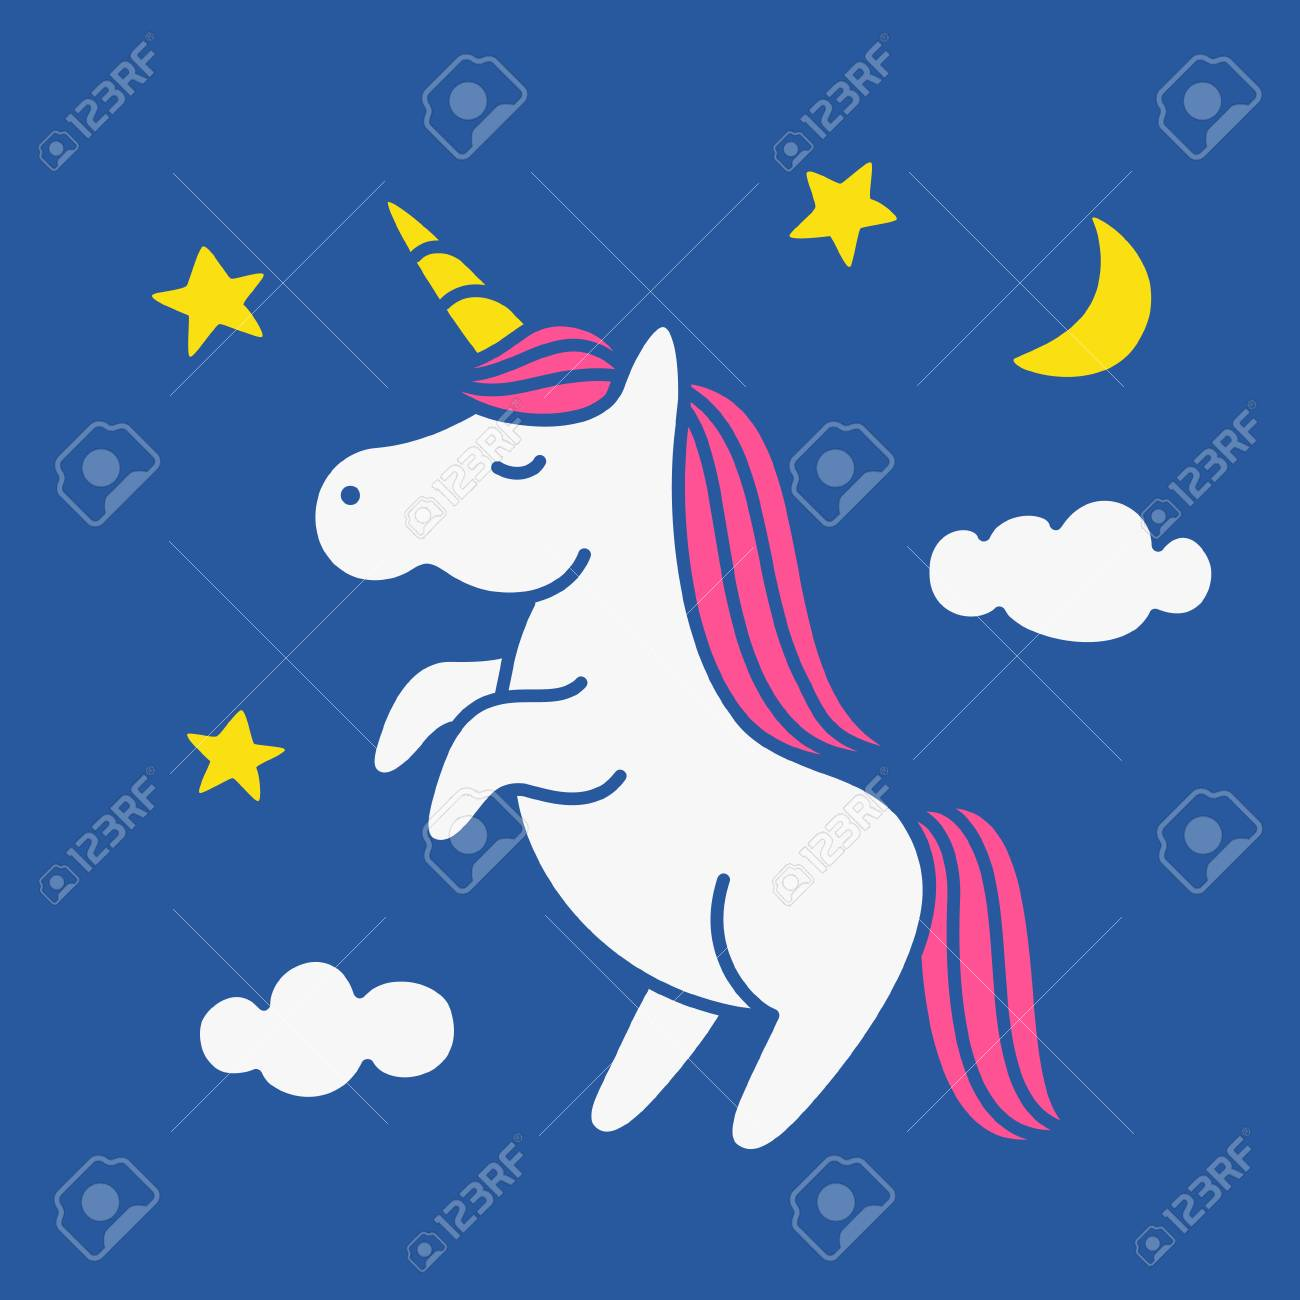 cute magic unicorn on night sky with clouds moon and stars cartoon rh 123rf com night sky stars vector night sky vector wallpaper